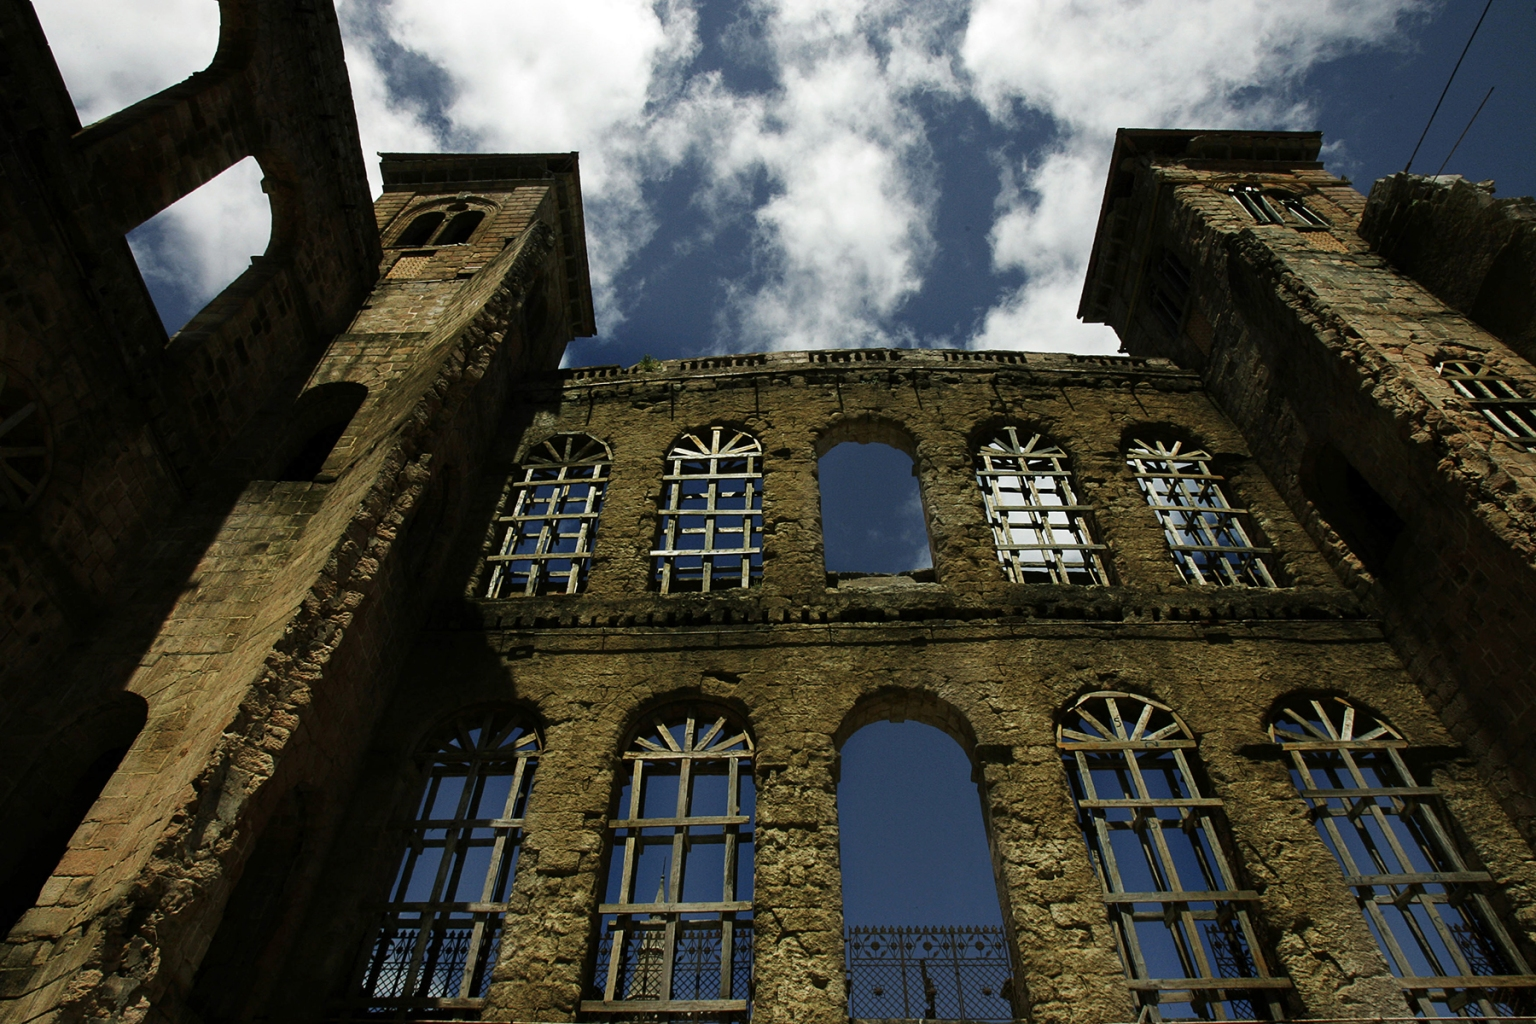 The remaining walls of the Rova of Antananarivo seen in March 2005 after it was gutted by fire in Madagascar in 1995. The palace, which has since been restored, dates to the 17th century and was home Madagascar royalty. (Marco Longari/AFP/Getty Images)